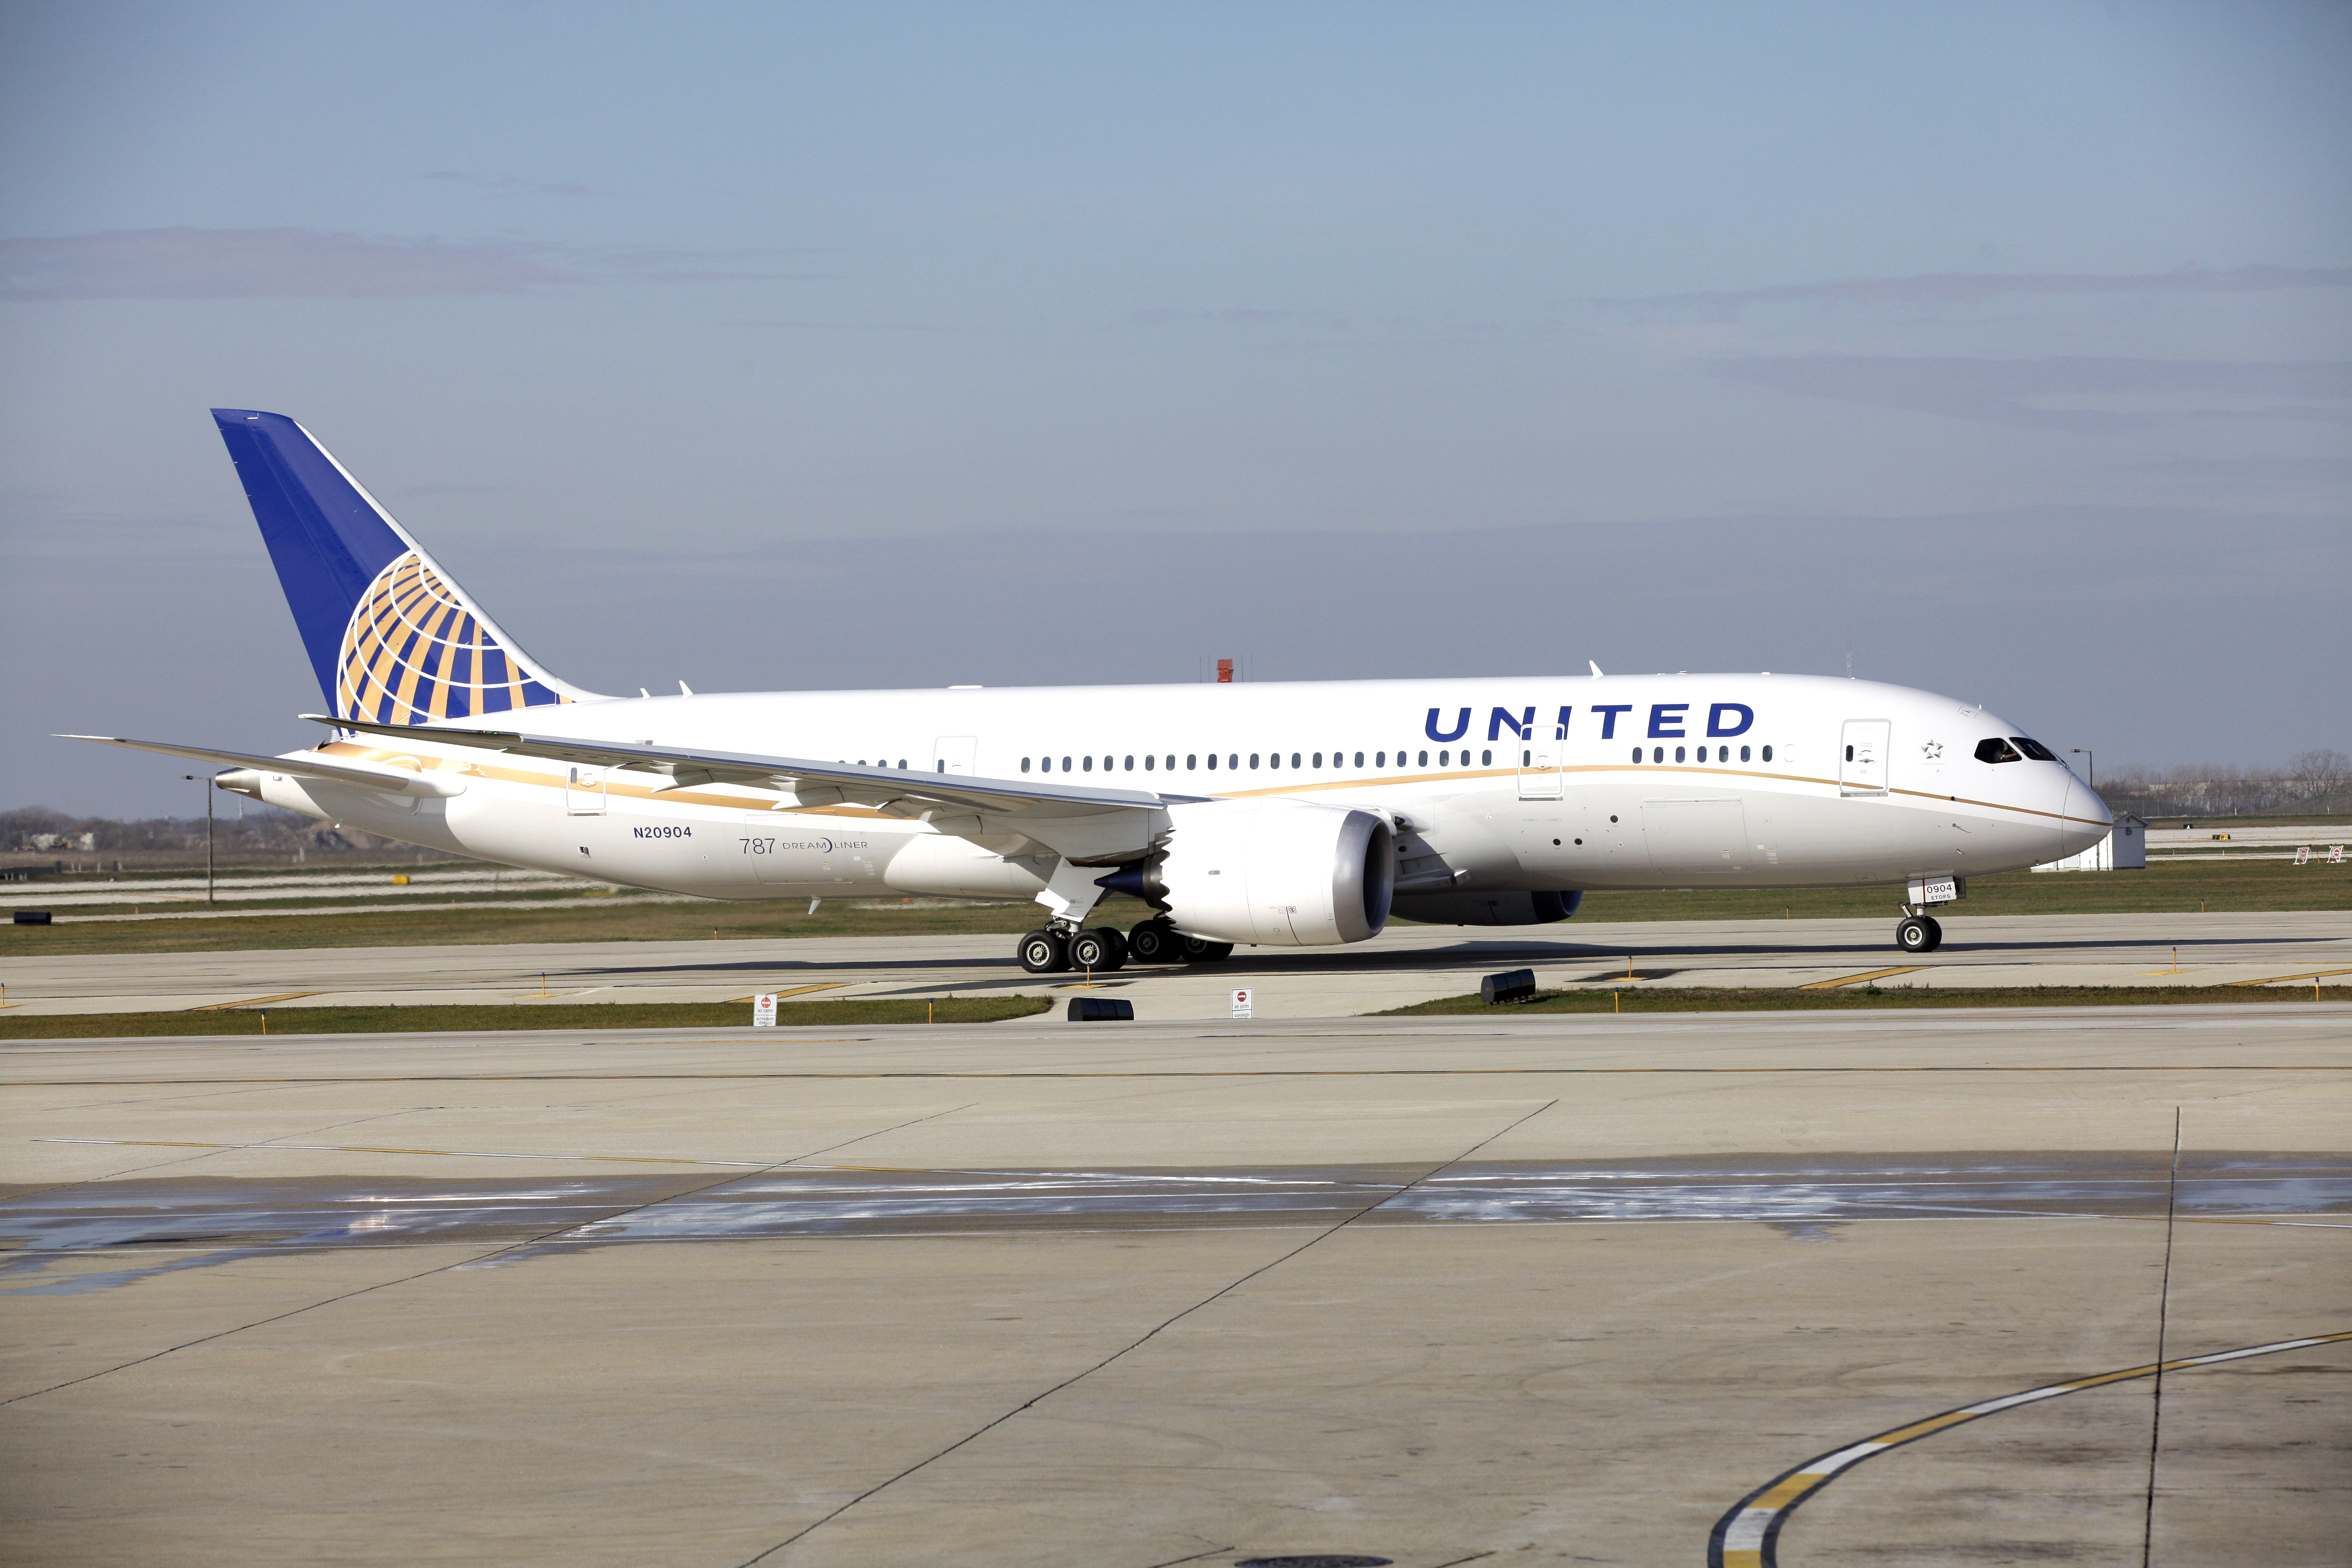 United Begins 787 Dreamliner Era With Toasts Water